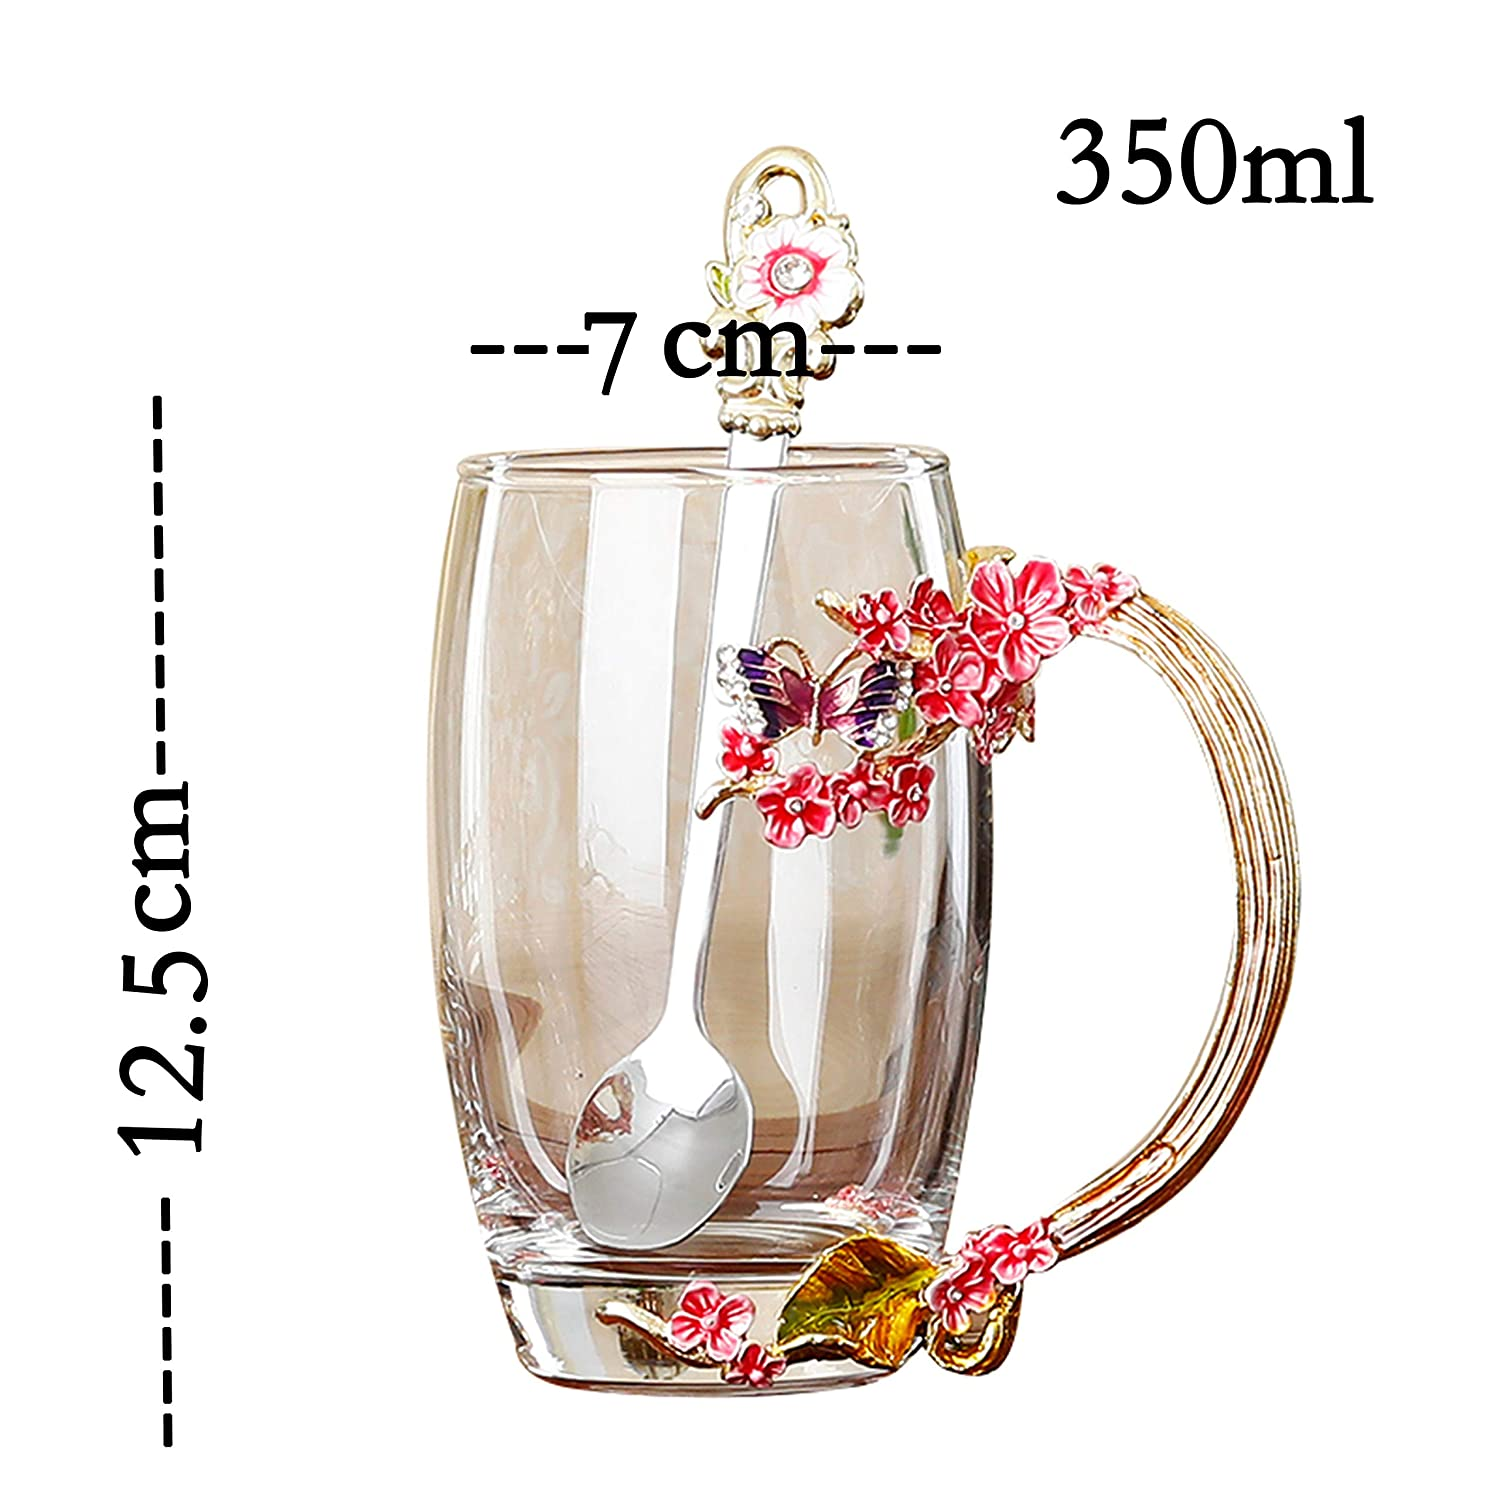 Short XuanMax Blue Plum Blossom Flowers Tea Cup Enamel Crystal Coffee Mug with Spoon Handmade Lead Free Butterfly Clear Glass Cups As Gift for Couples Friends Birthday Anniversary Valentines Day